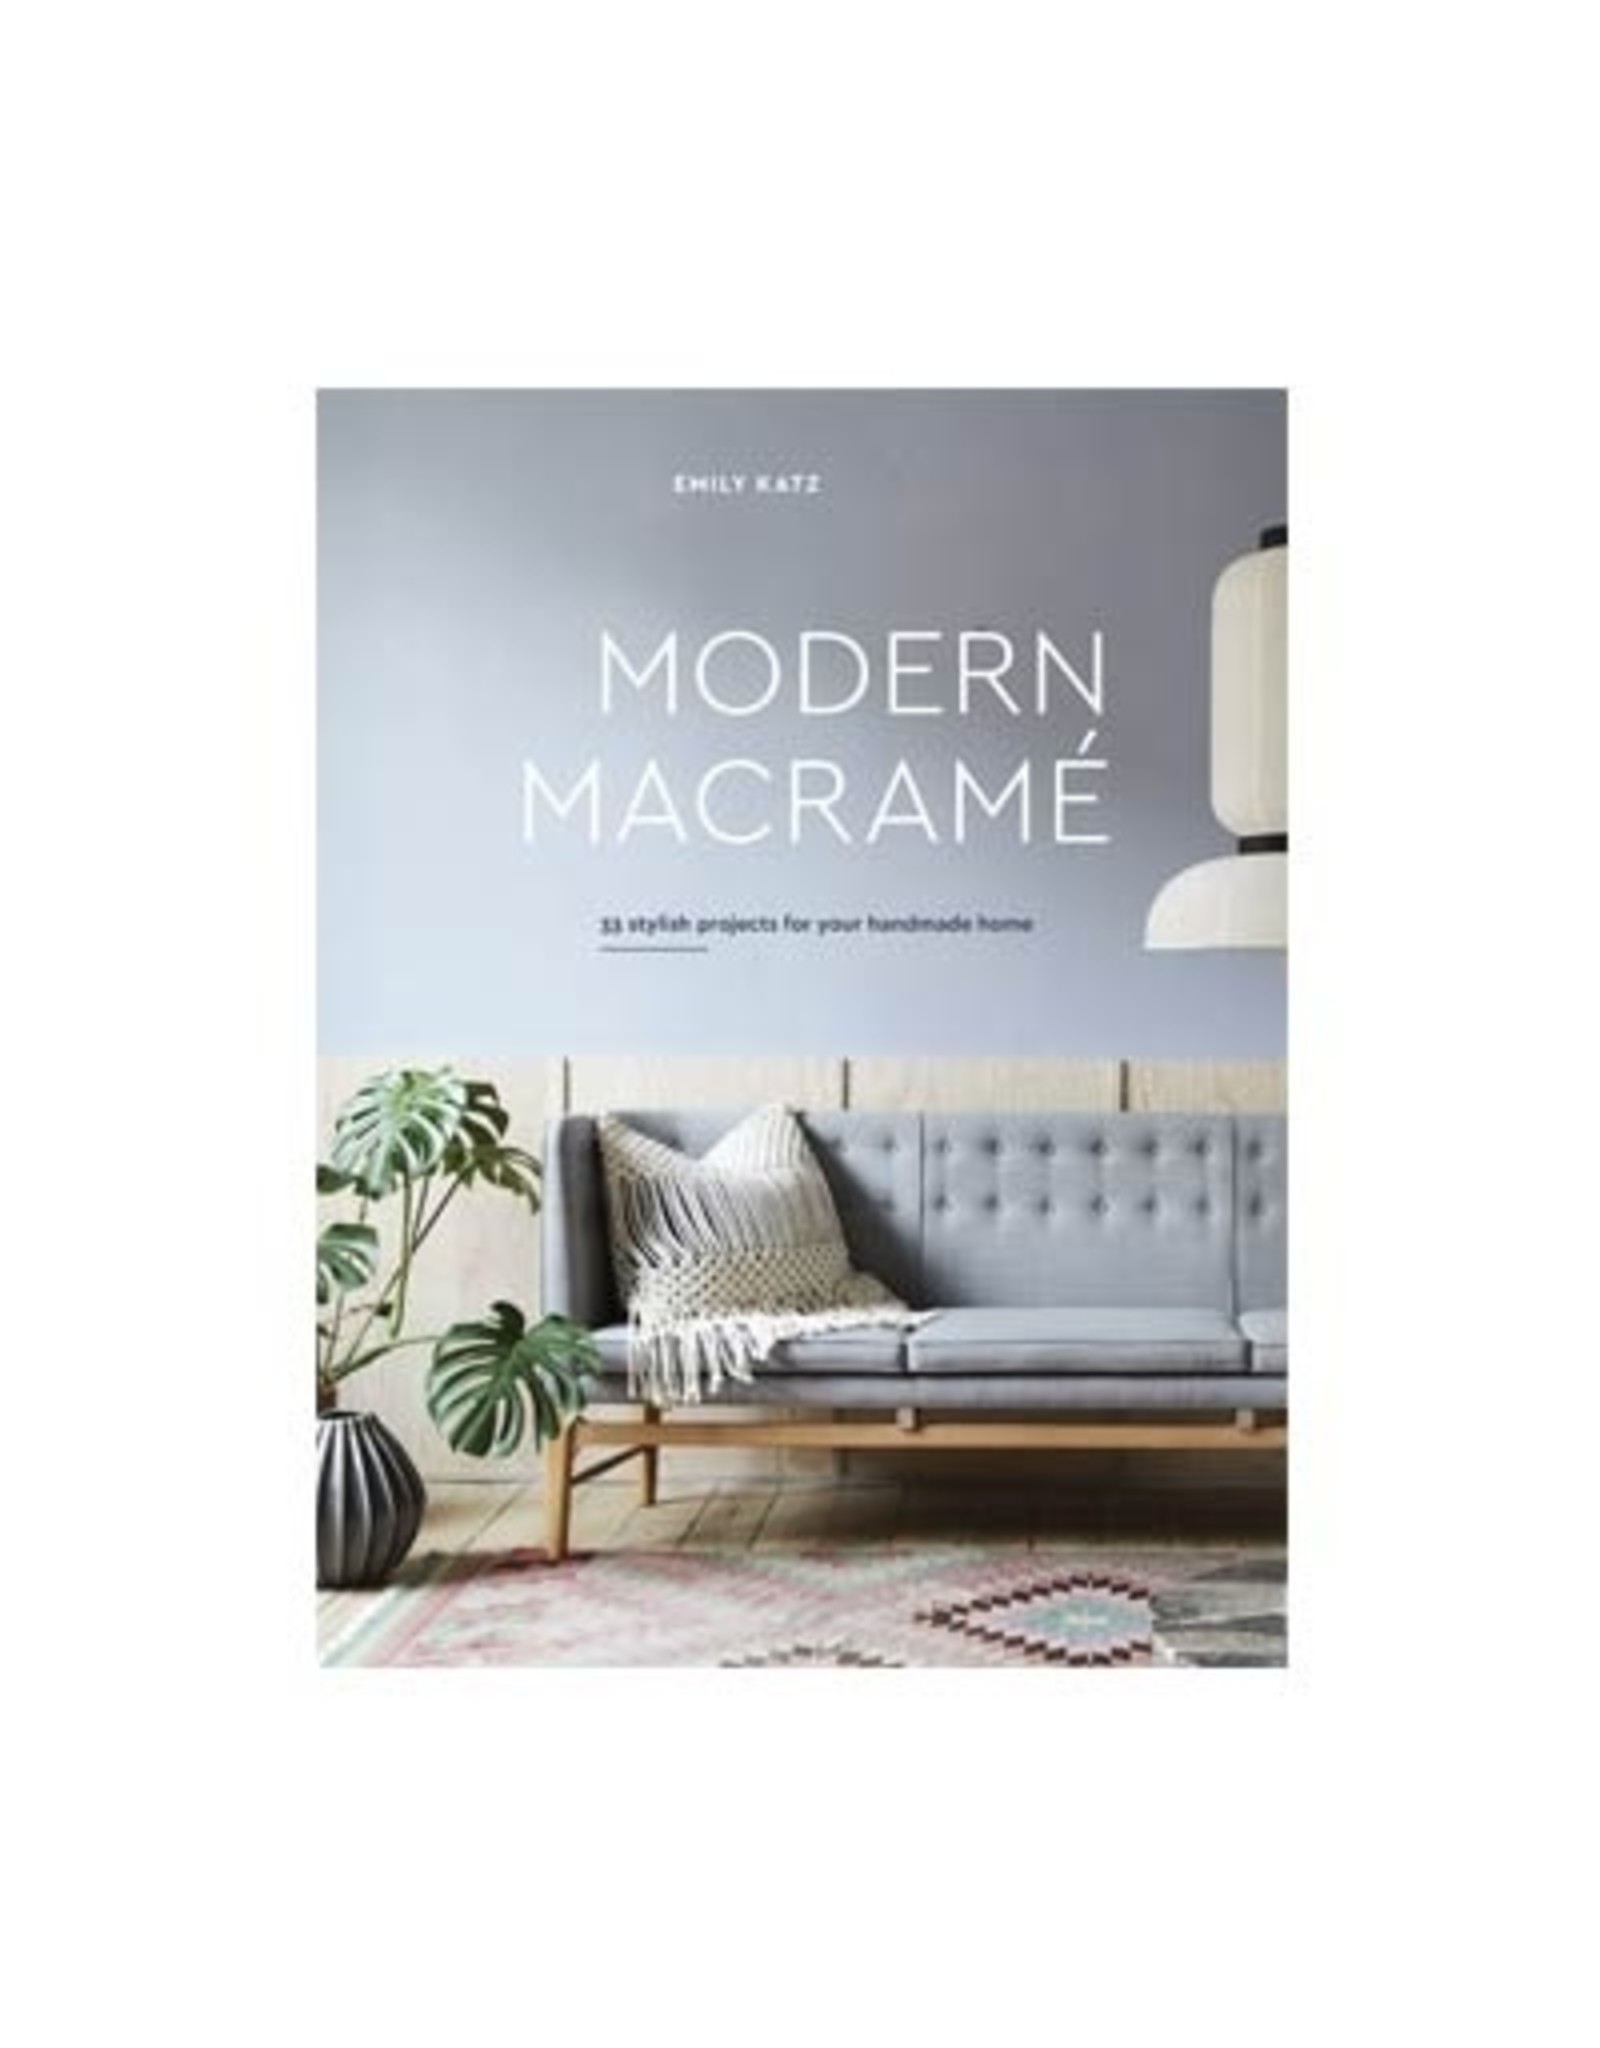 Modern Macramé - Emily Katz - Patterns